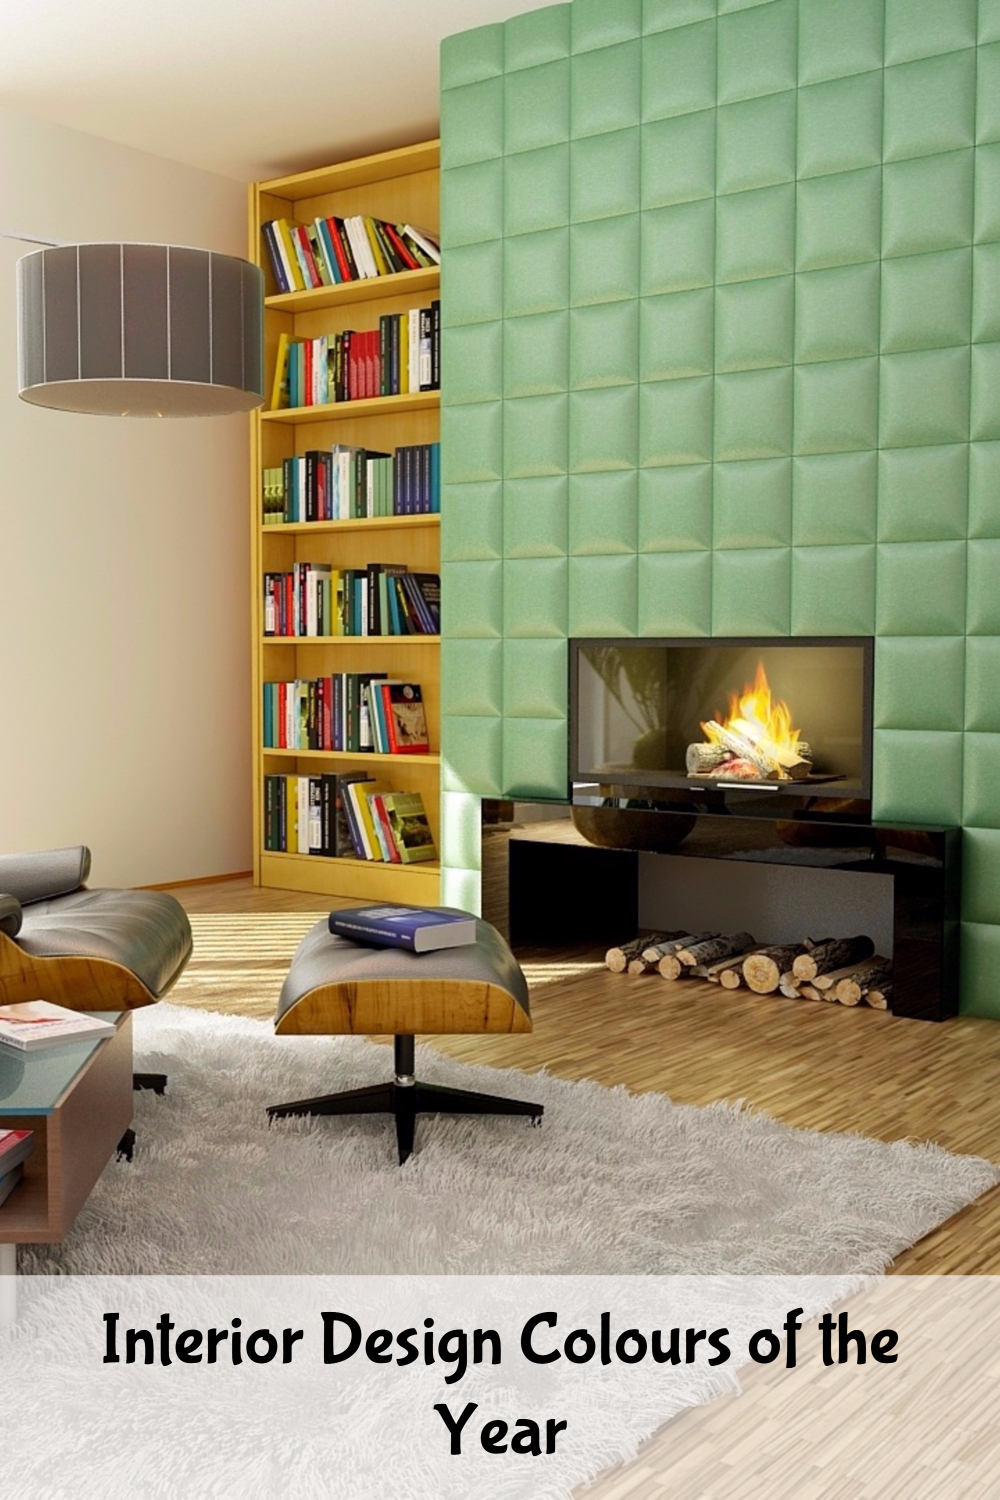 Interior design colours of the year life in a break down for Interior designs colours